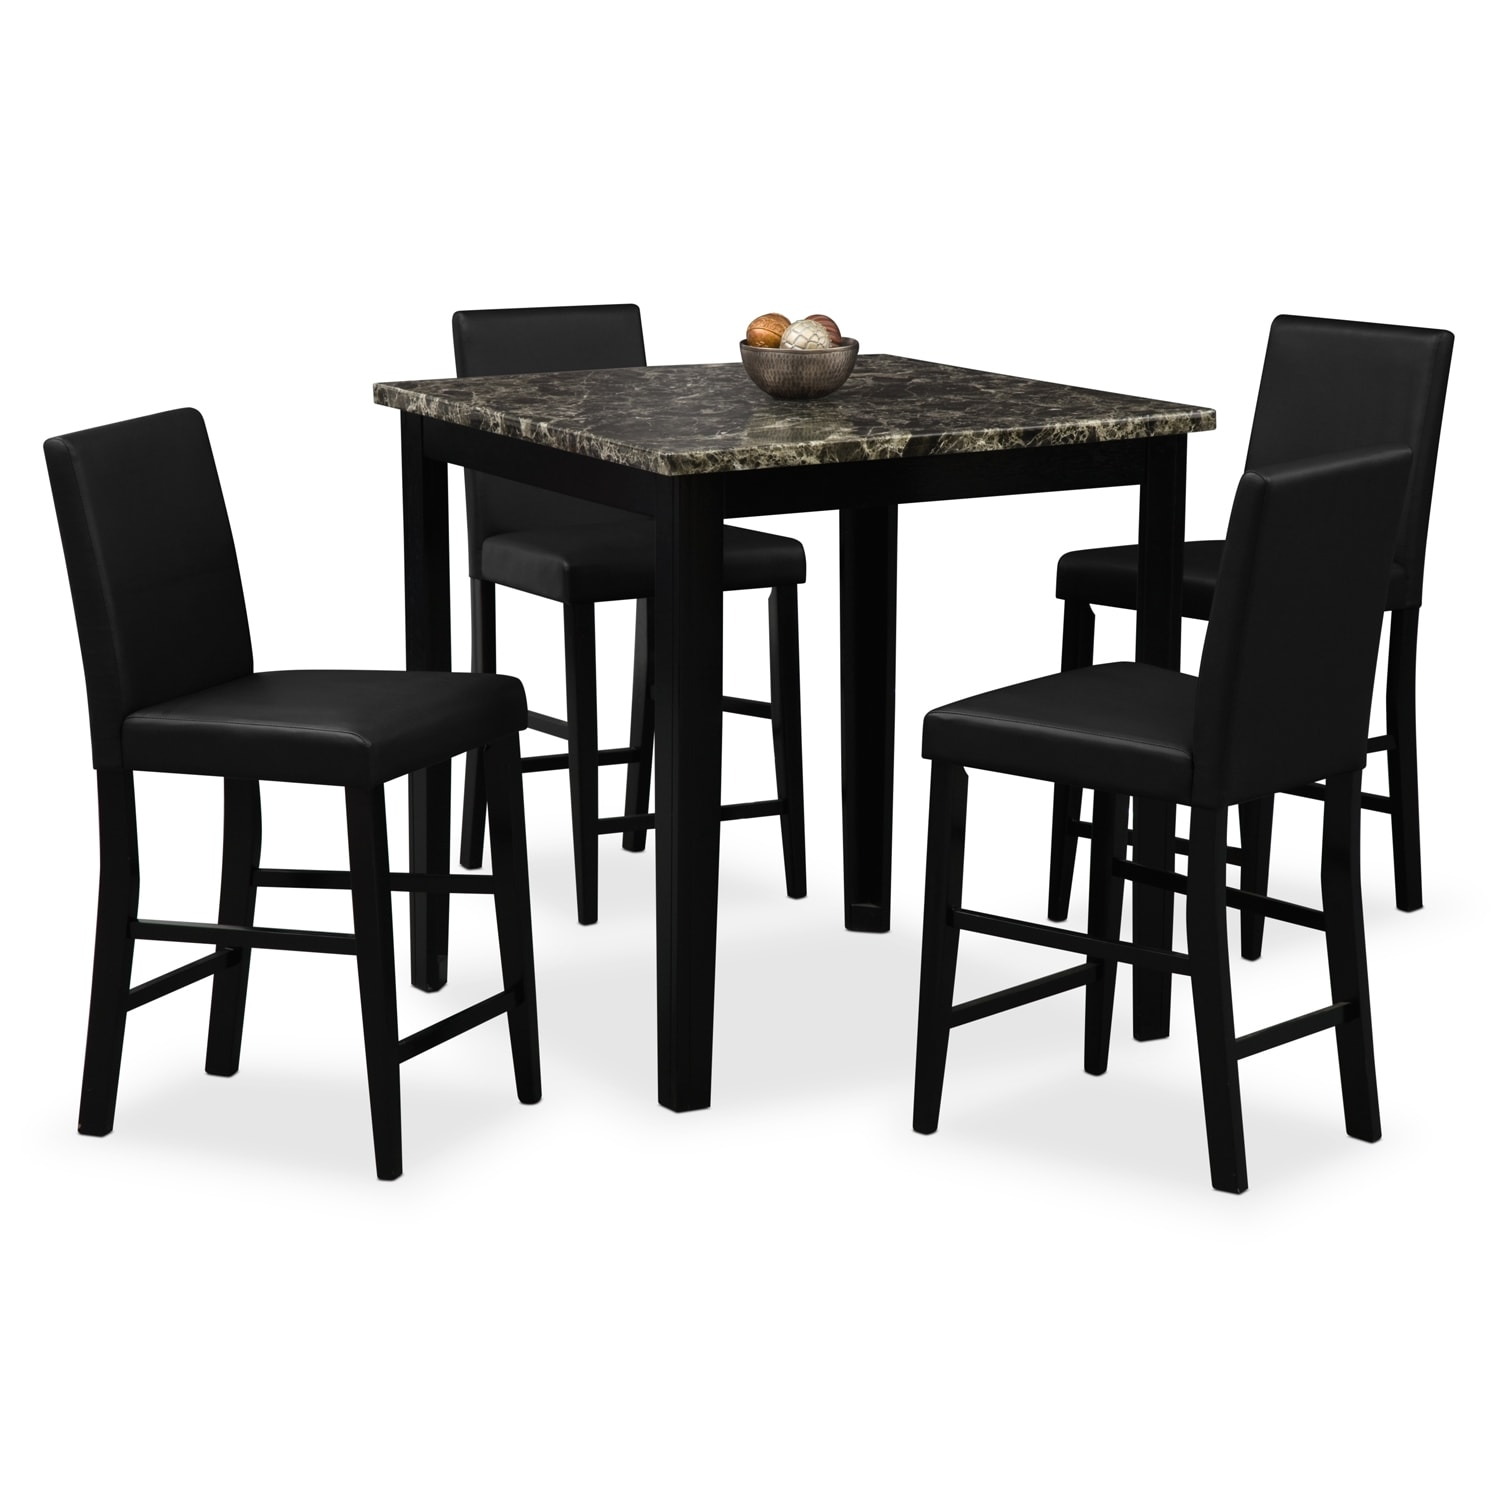 Shadow ii 5 pc counter height dinette value city furniture - Black dining room tables ...